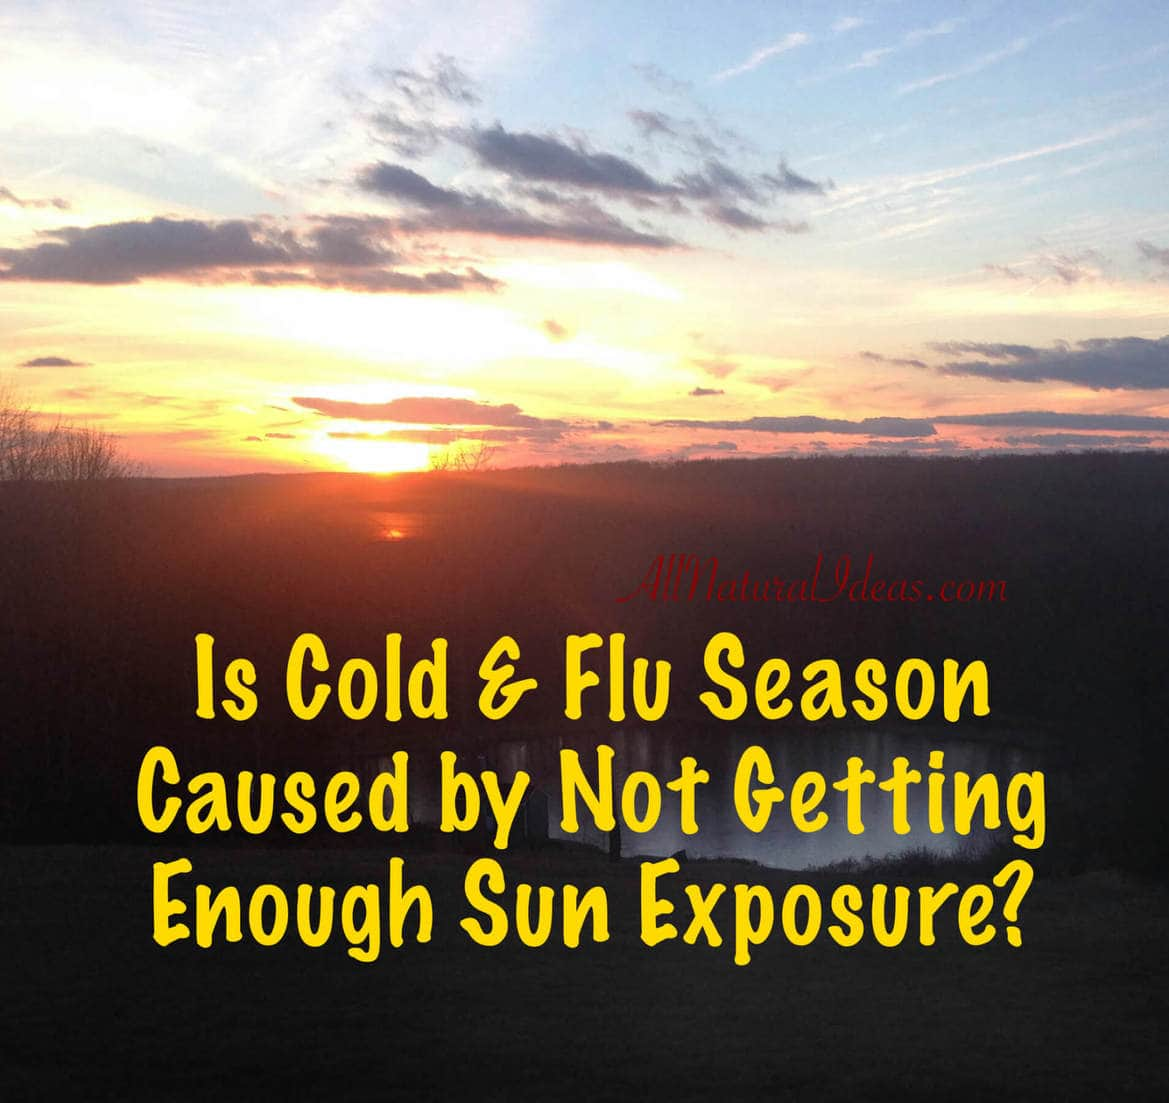 Vitamin D connection to Cold and Flu Season